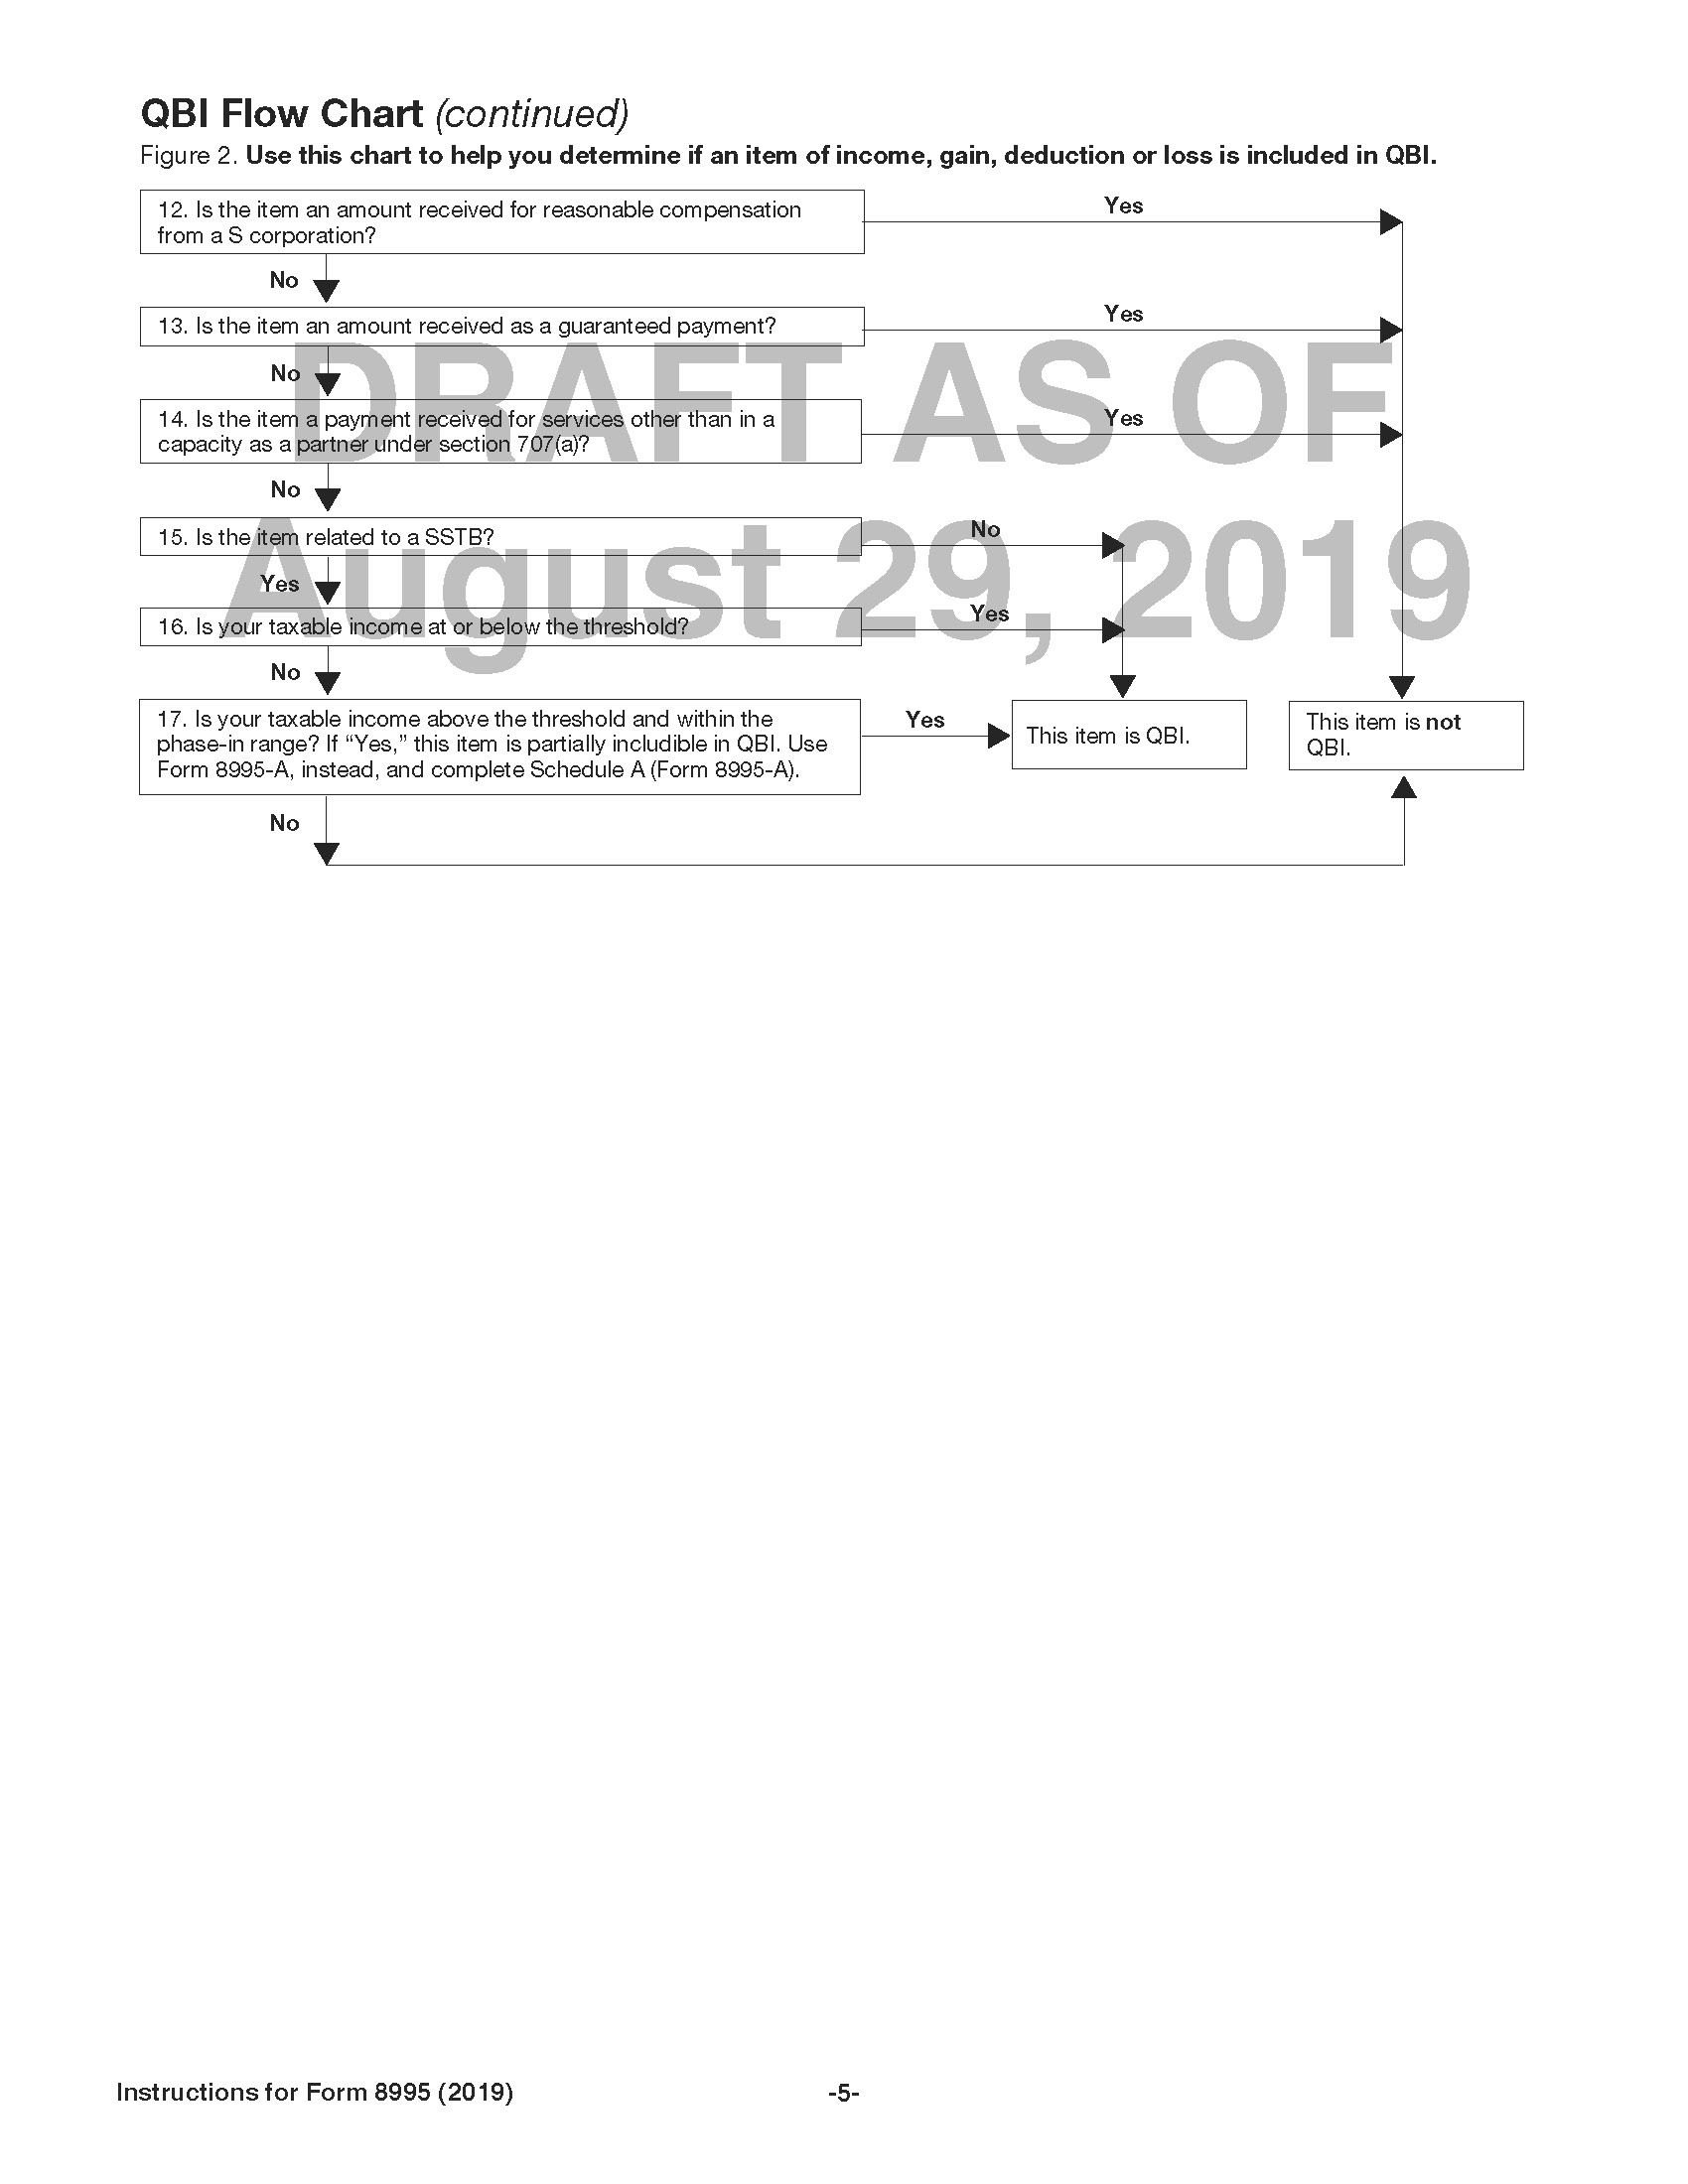 QBI Flowchart from 2019 Draft 8995 Instructions, Second Page